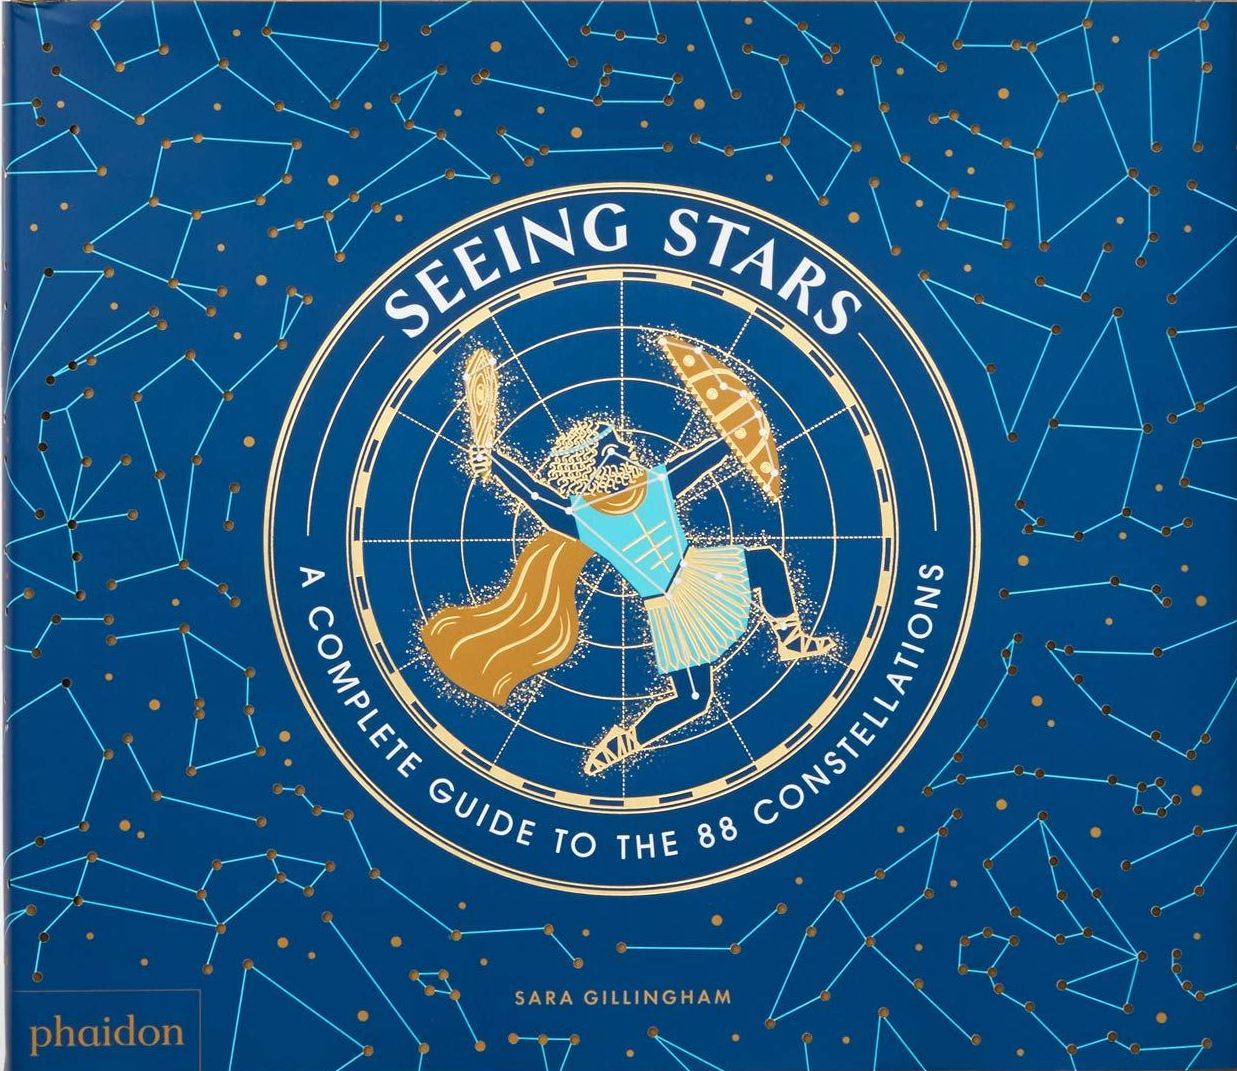 celebrate-picture-books-picture-book-review-seeing-stars-cover-2